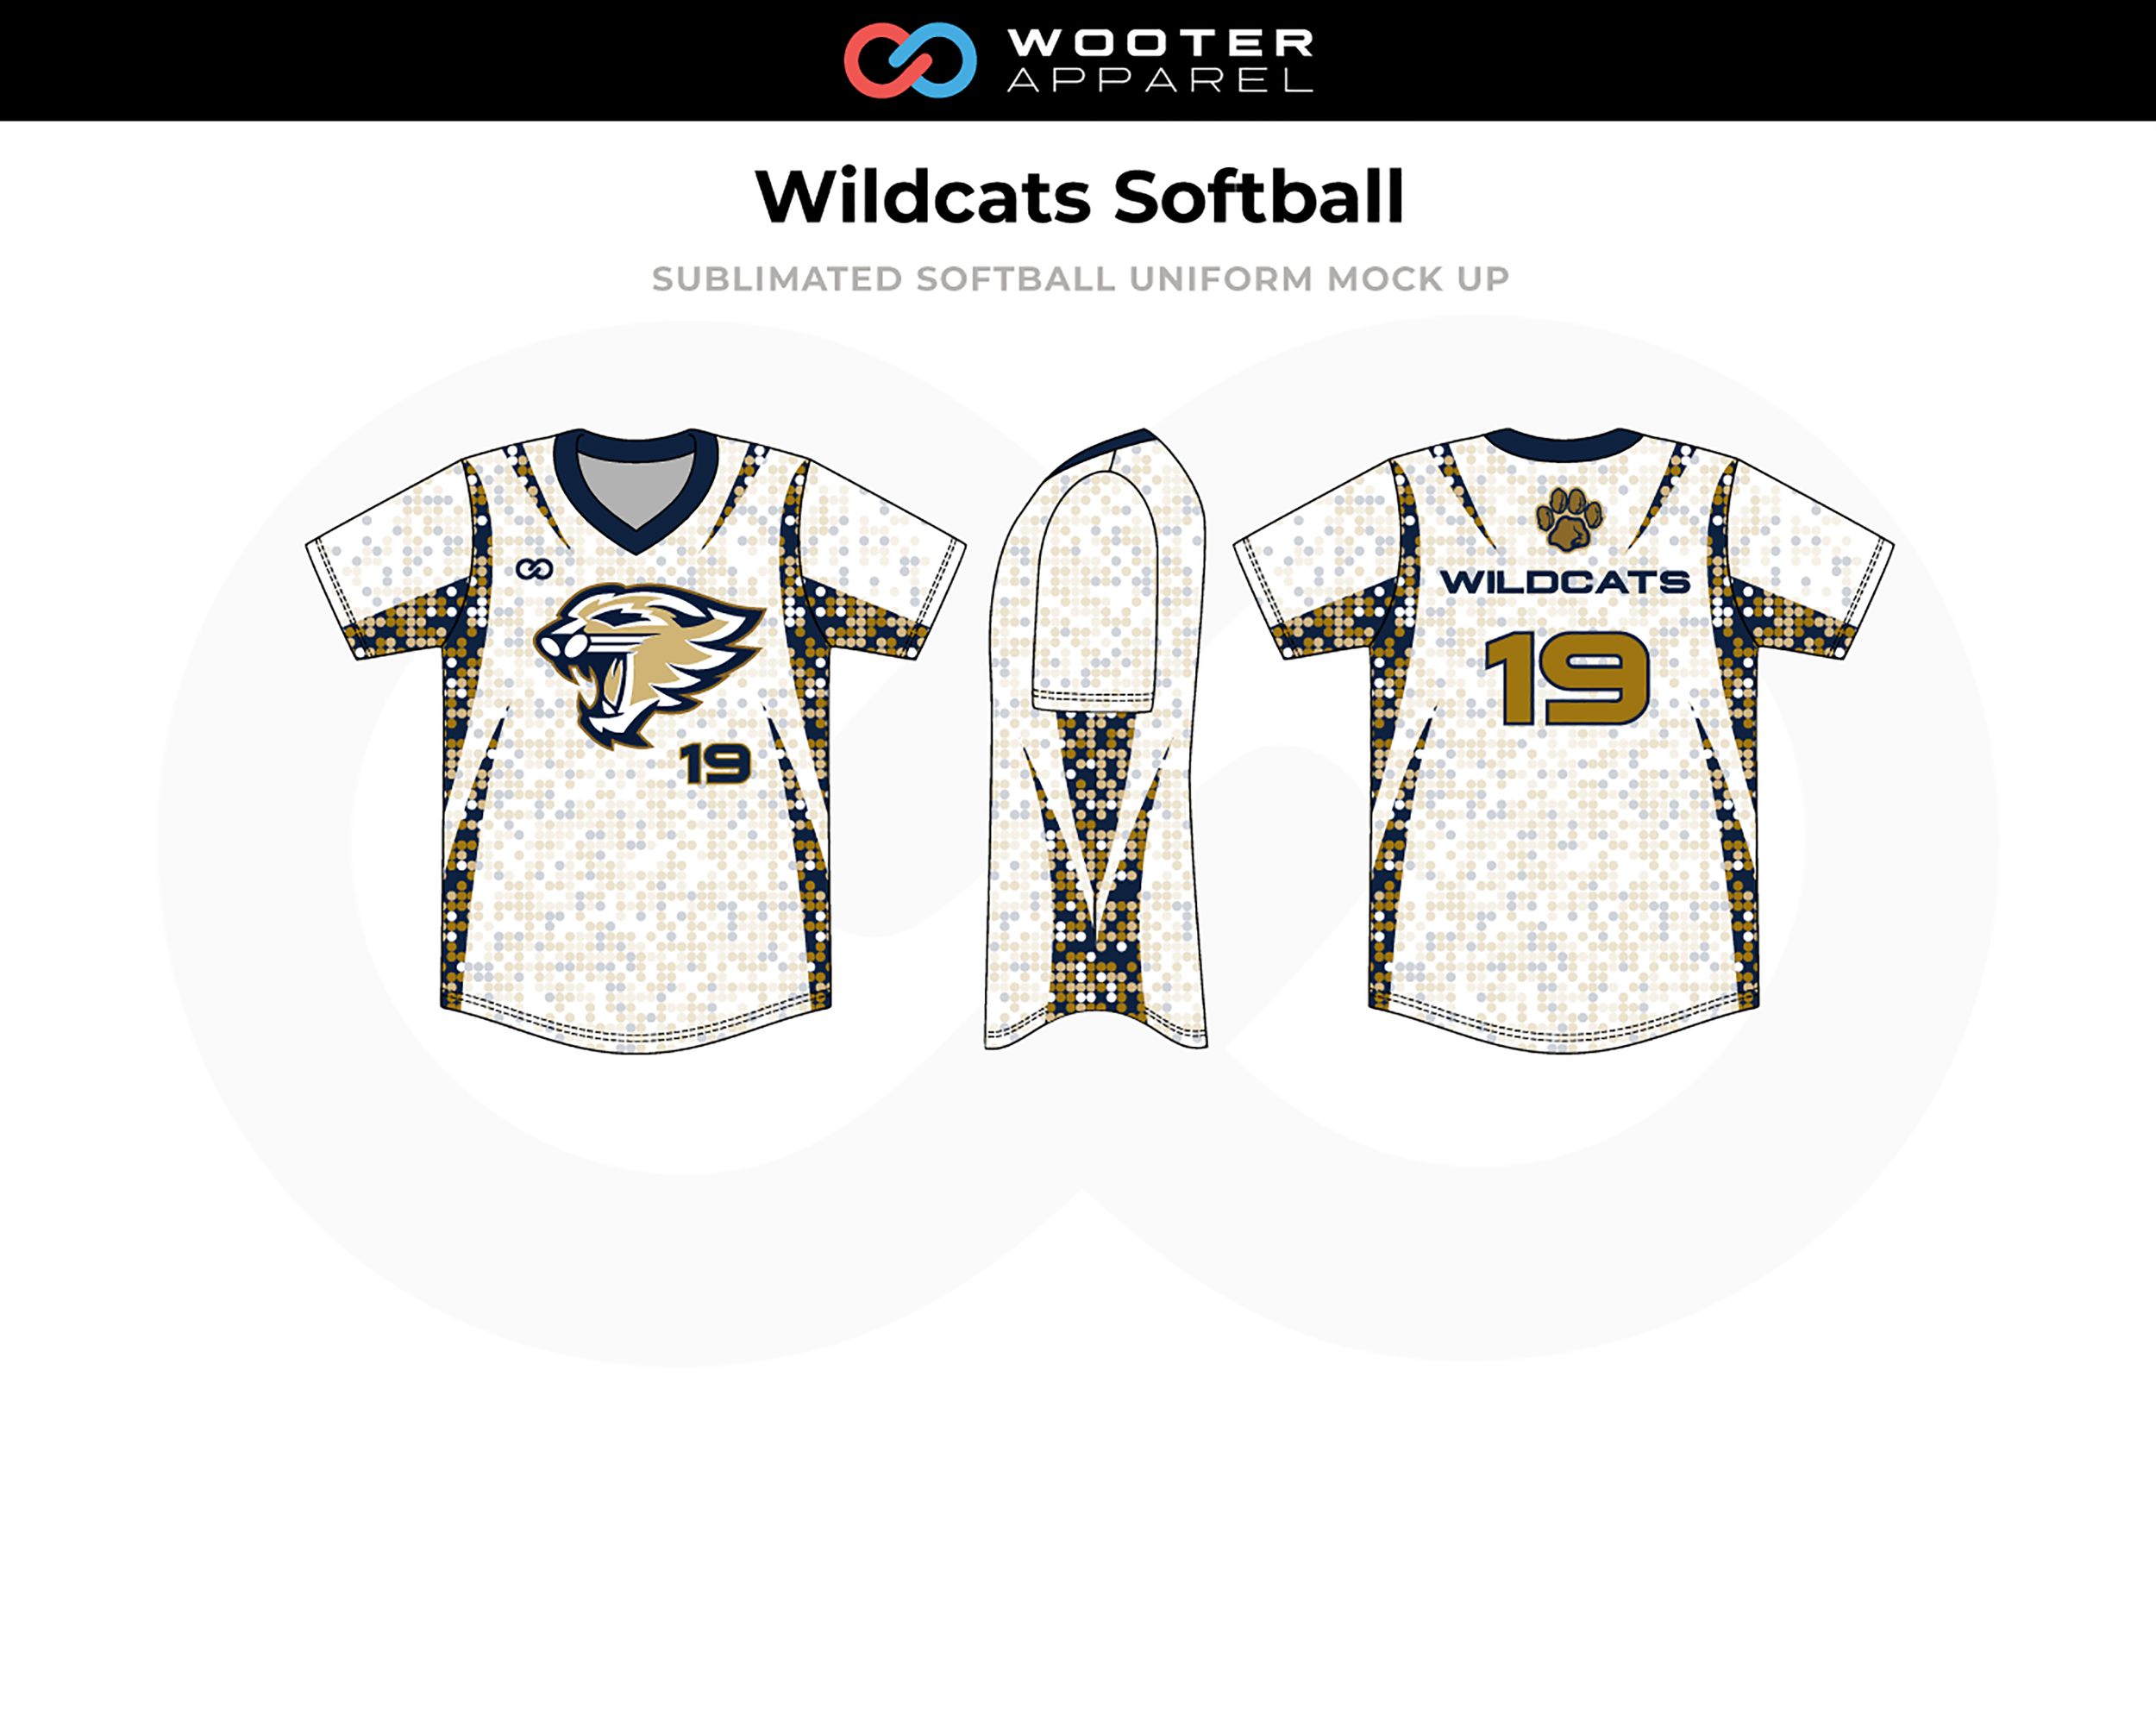 Wildcats--Sublimated-Softball-Uniform.png